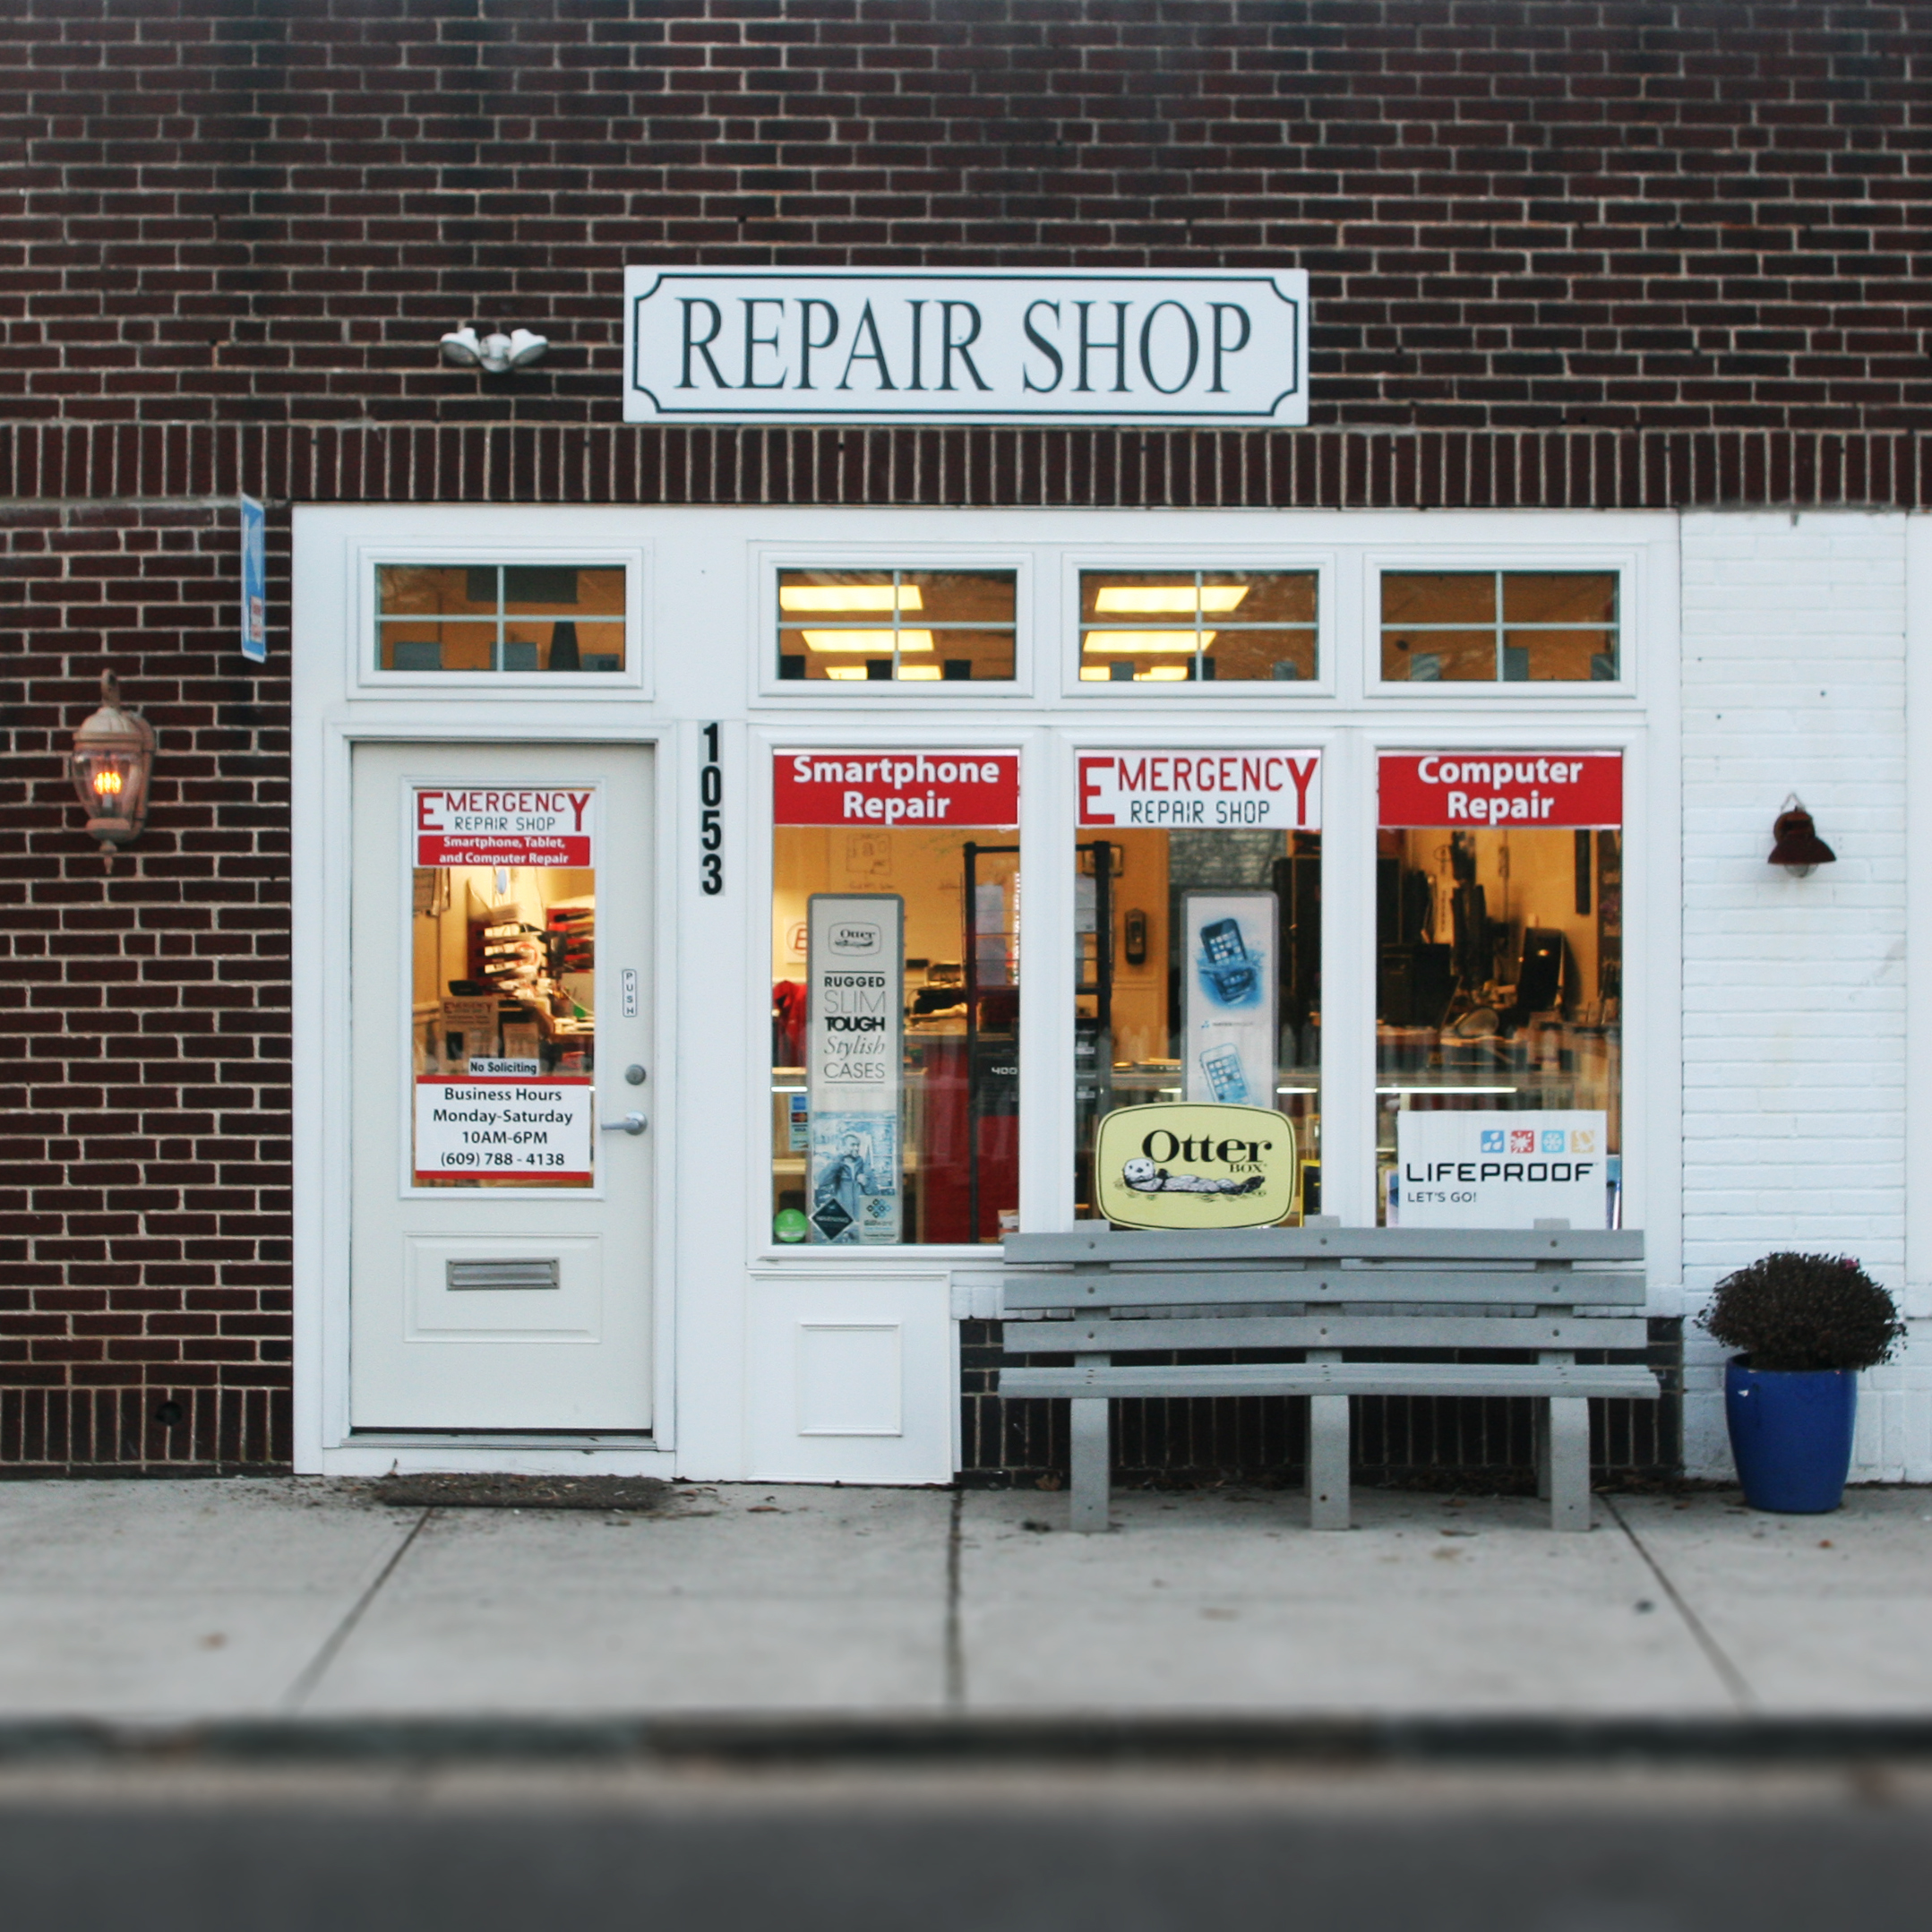 Repair Shop Emergency Repair Shop Ers Technology Support And Service